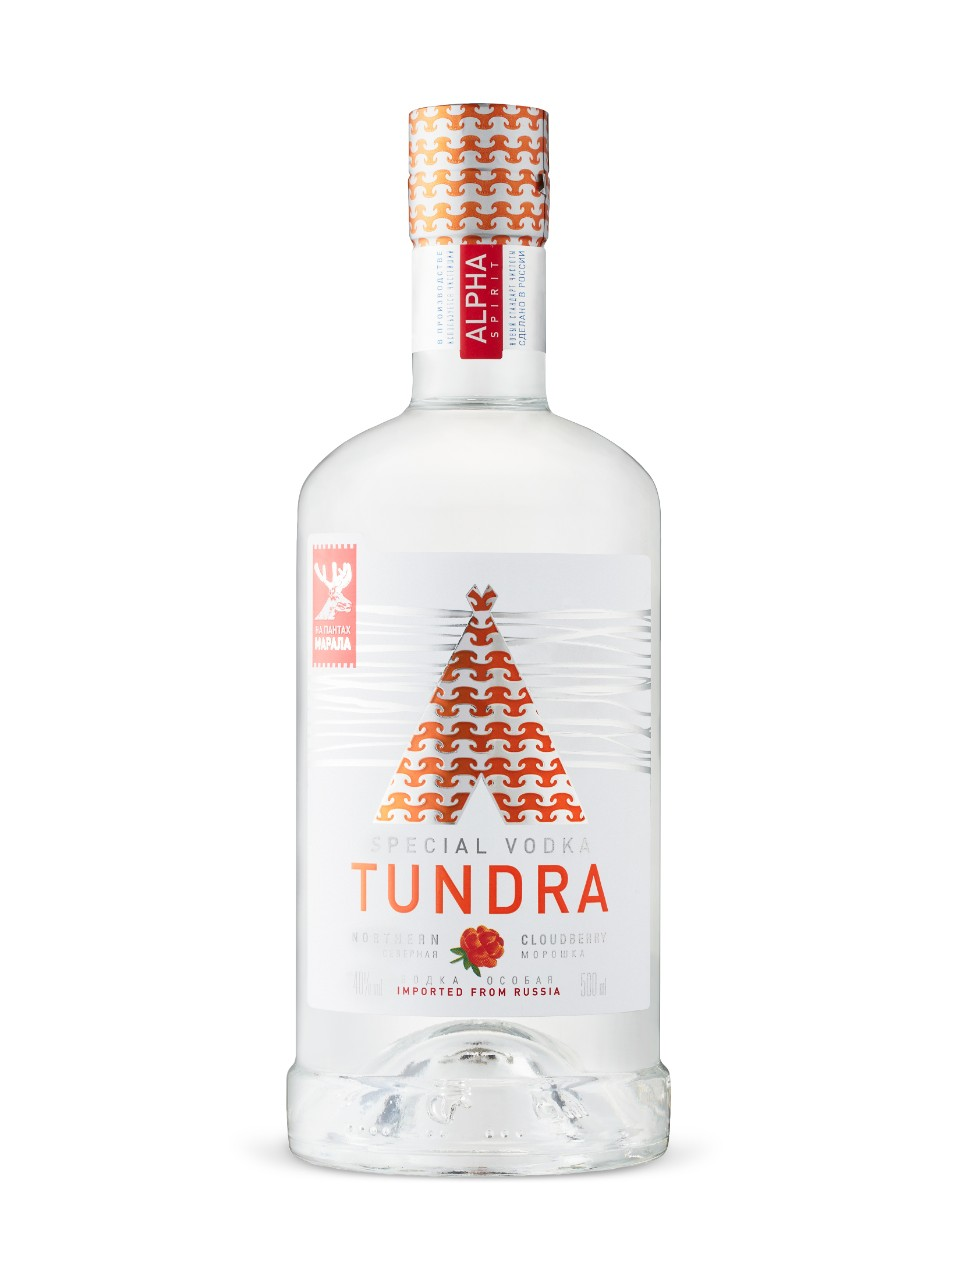 Special Vodka Tundra Northern Cloudberry from LCBO